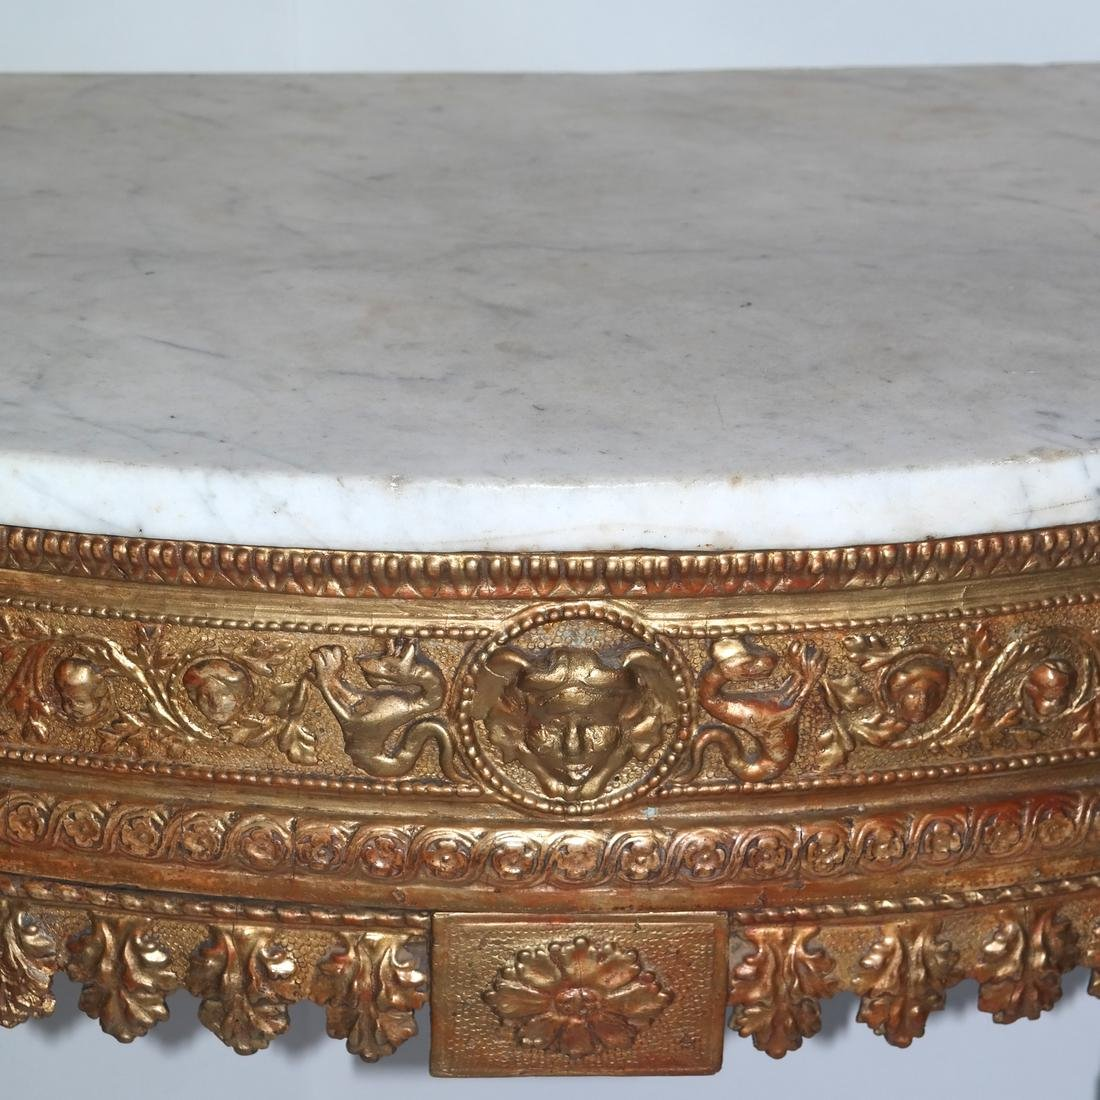 Antique Continental Giltwood Marble Top Console - 5